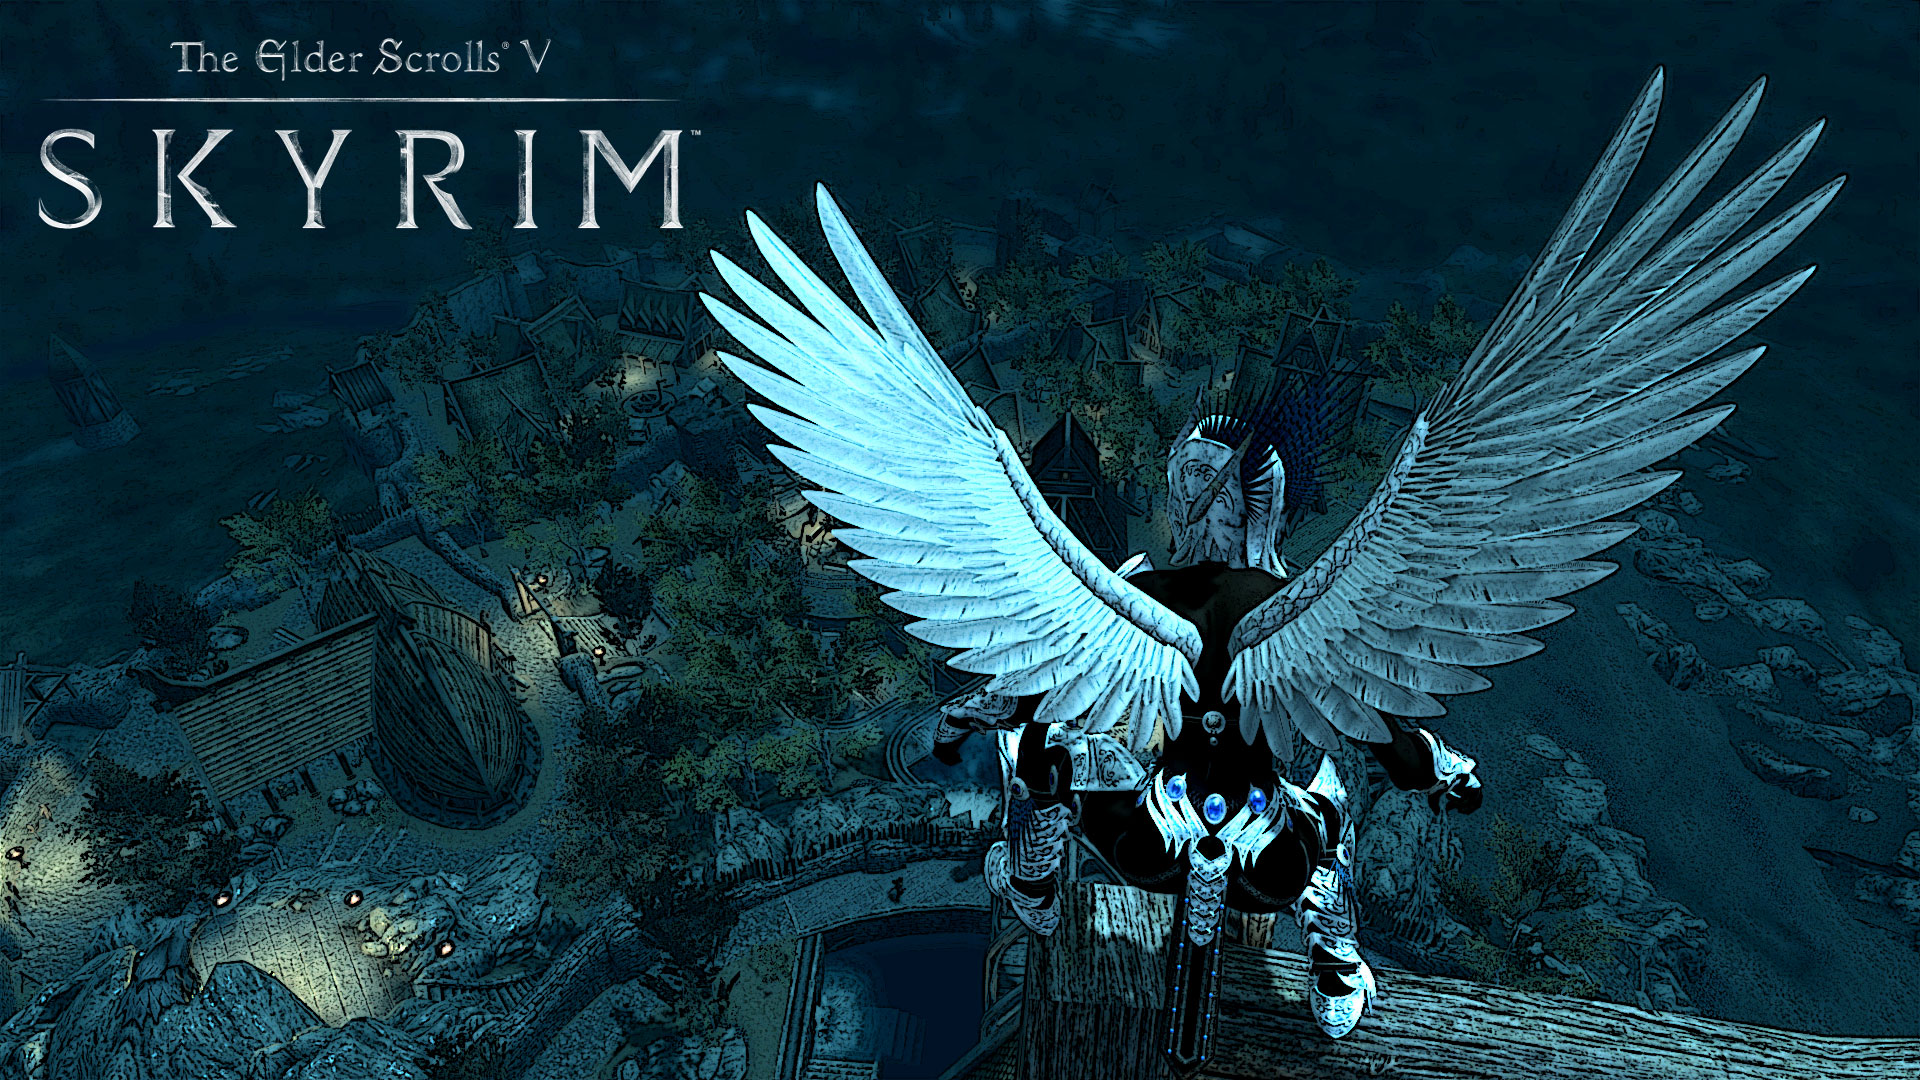 Skyrim The Guardian Angel From 703496 With Resolutions 19201080 1920x1080